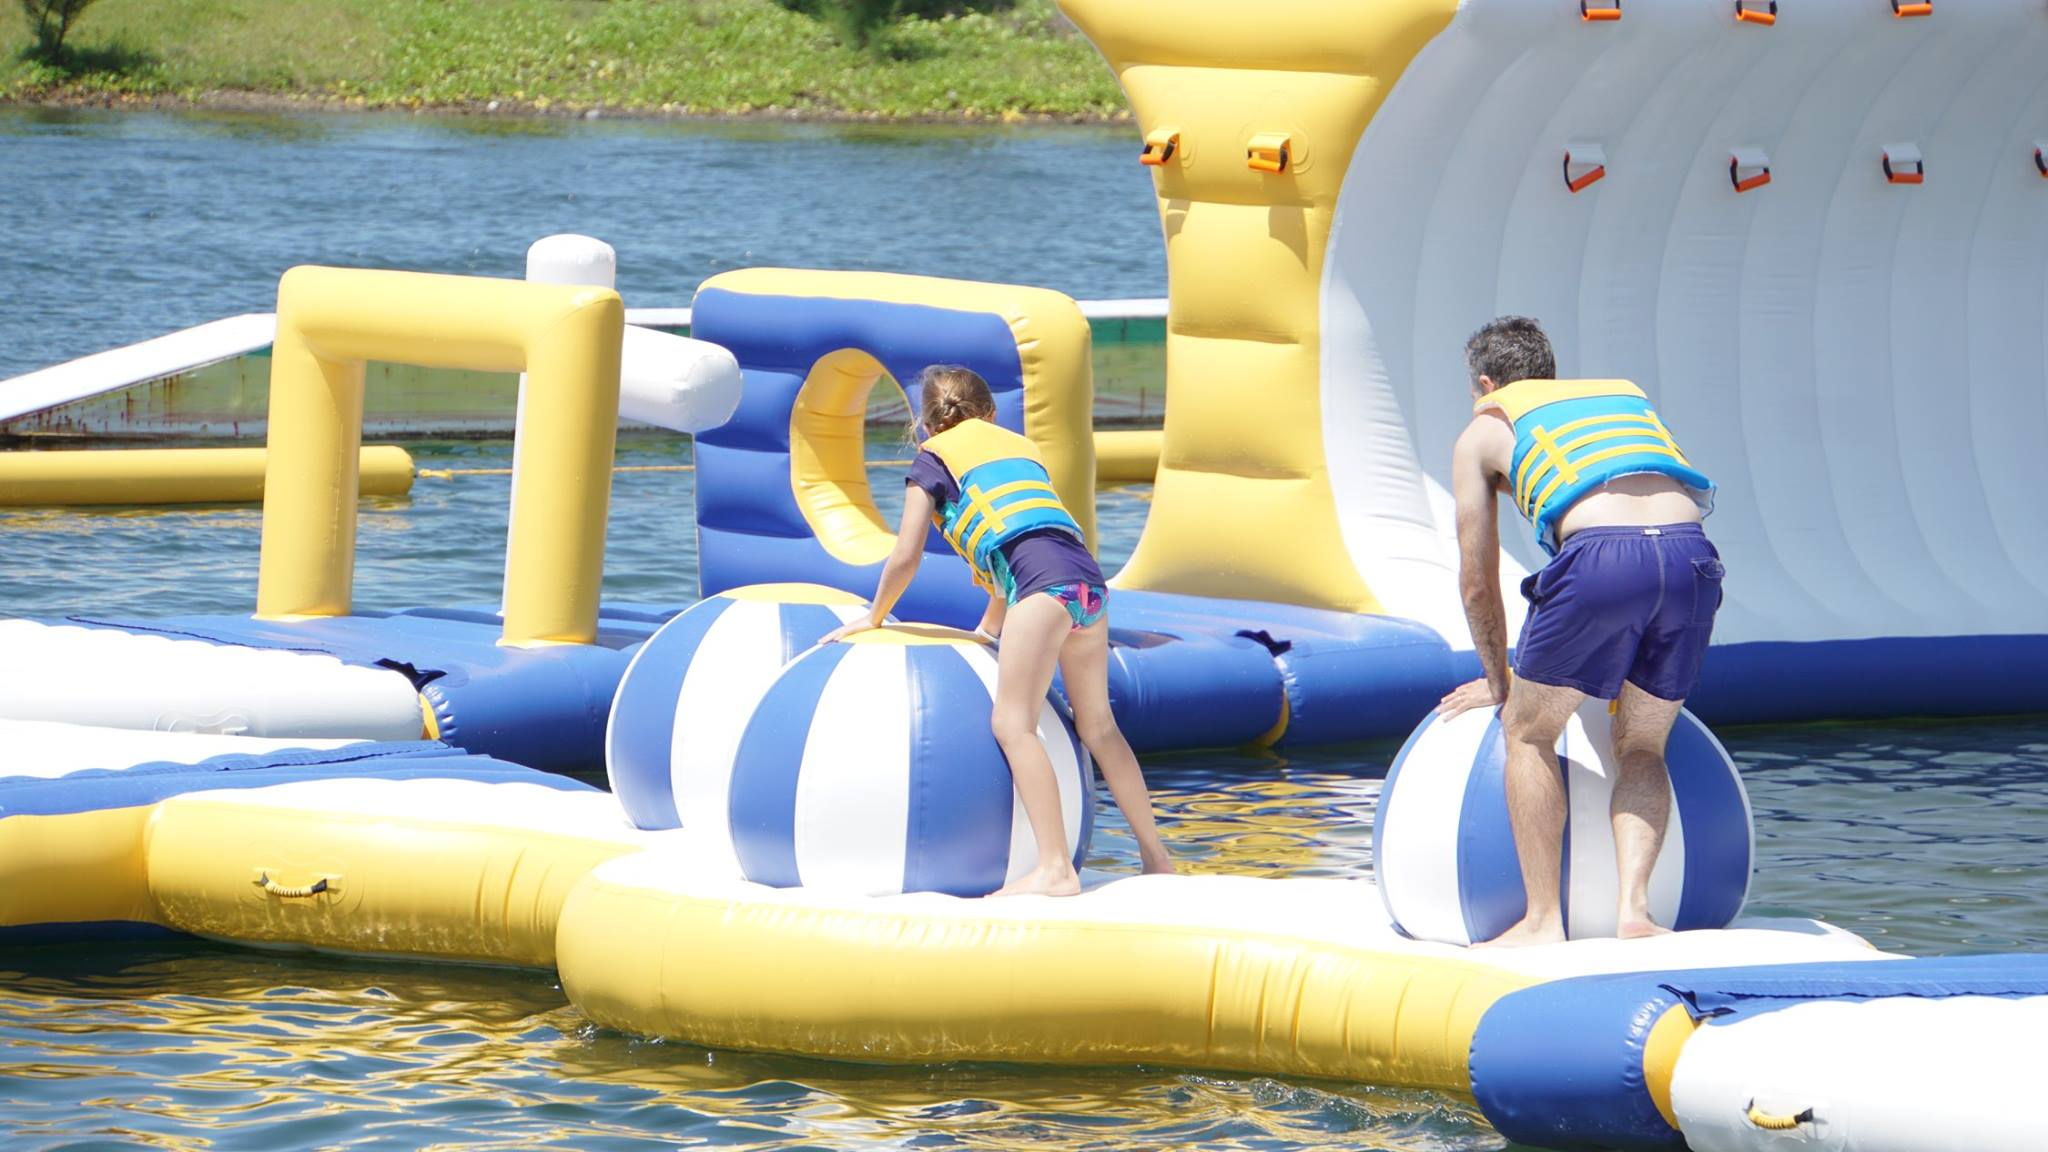 Bouncia harrison lake inflatables directly sale for adults-28